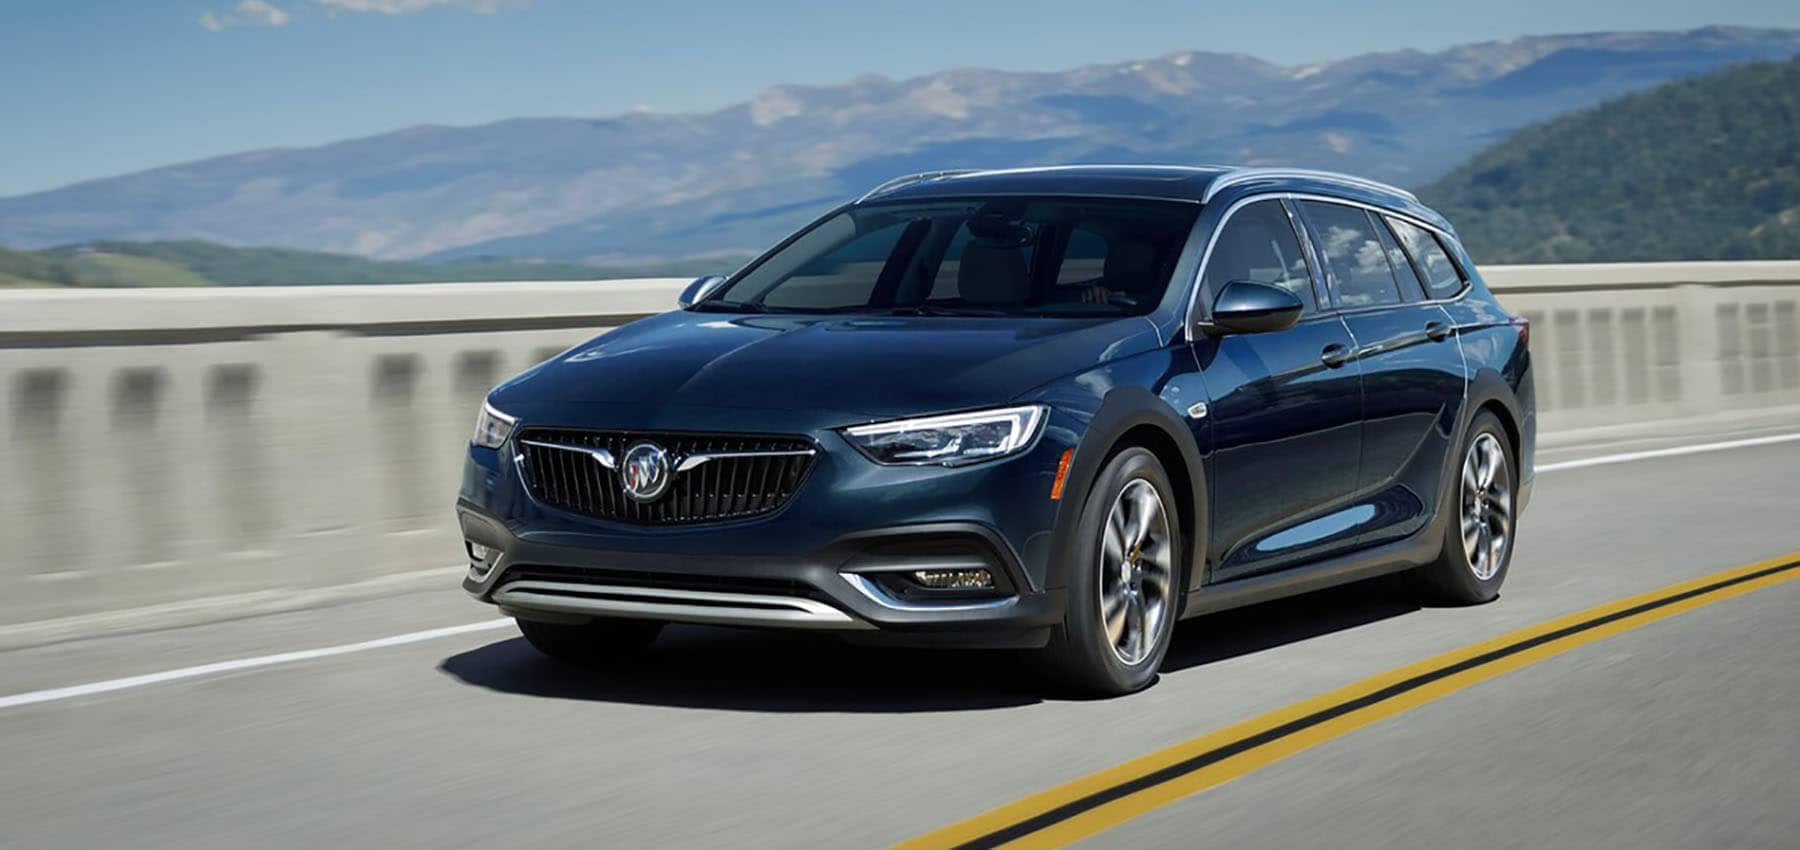 2019 Buick Regal TourX Driving